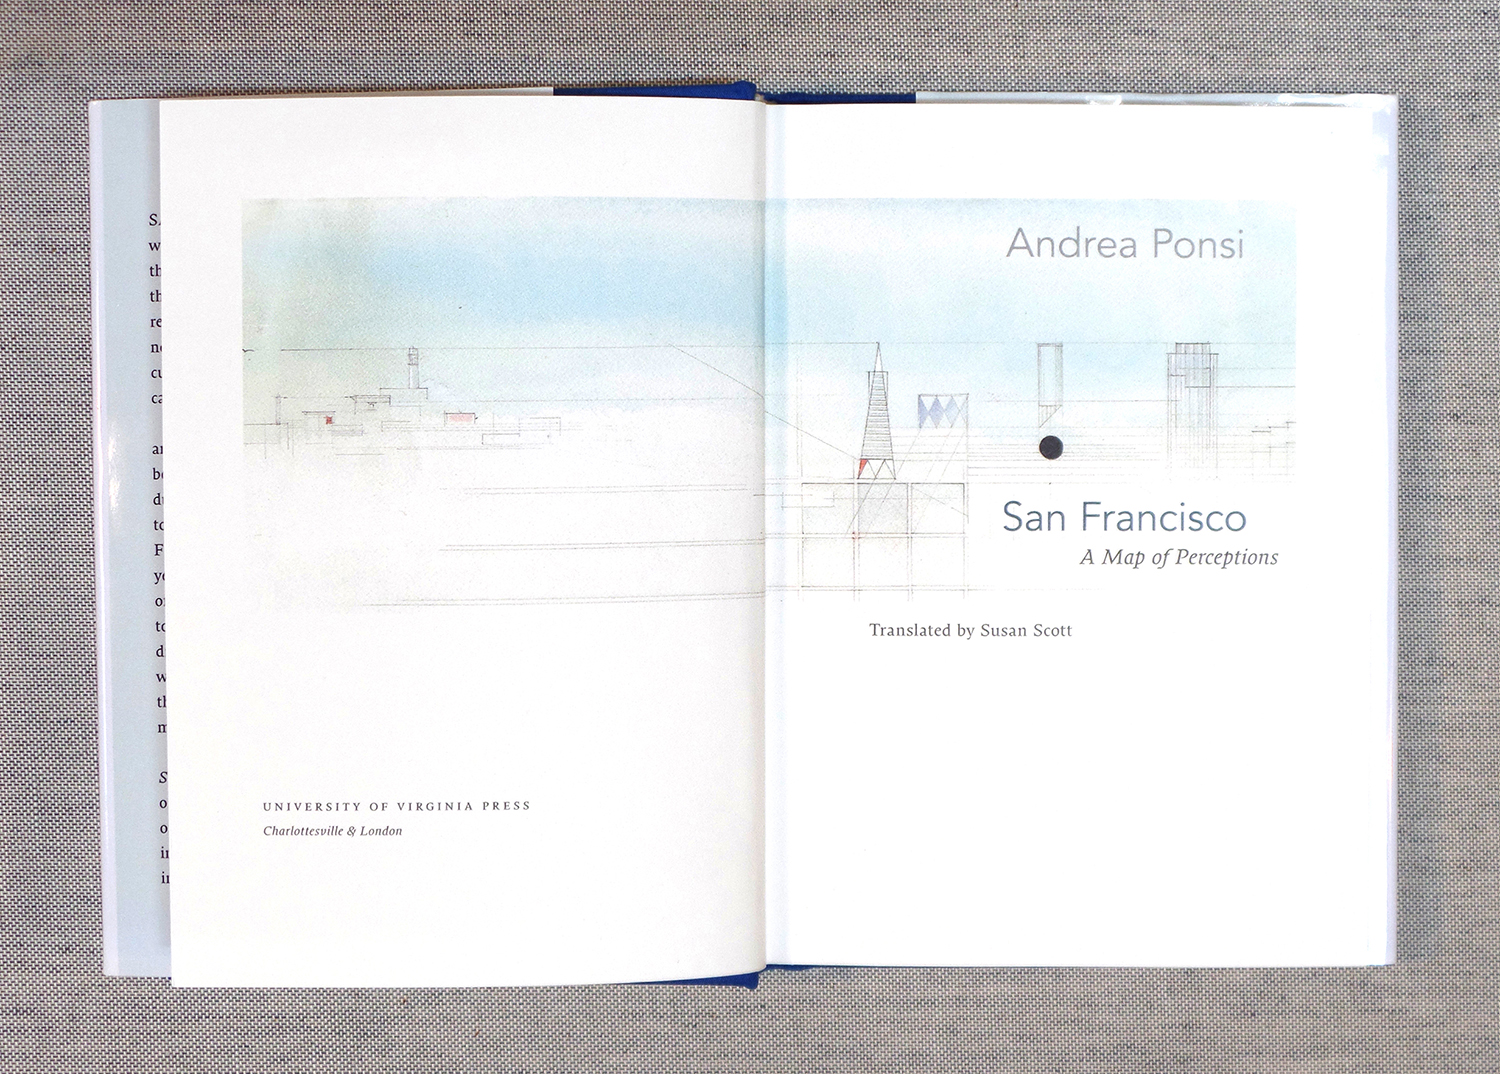 Ponsi - San Francisco . A Map of Perceptions_SPREADS_2.jpg